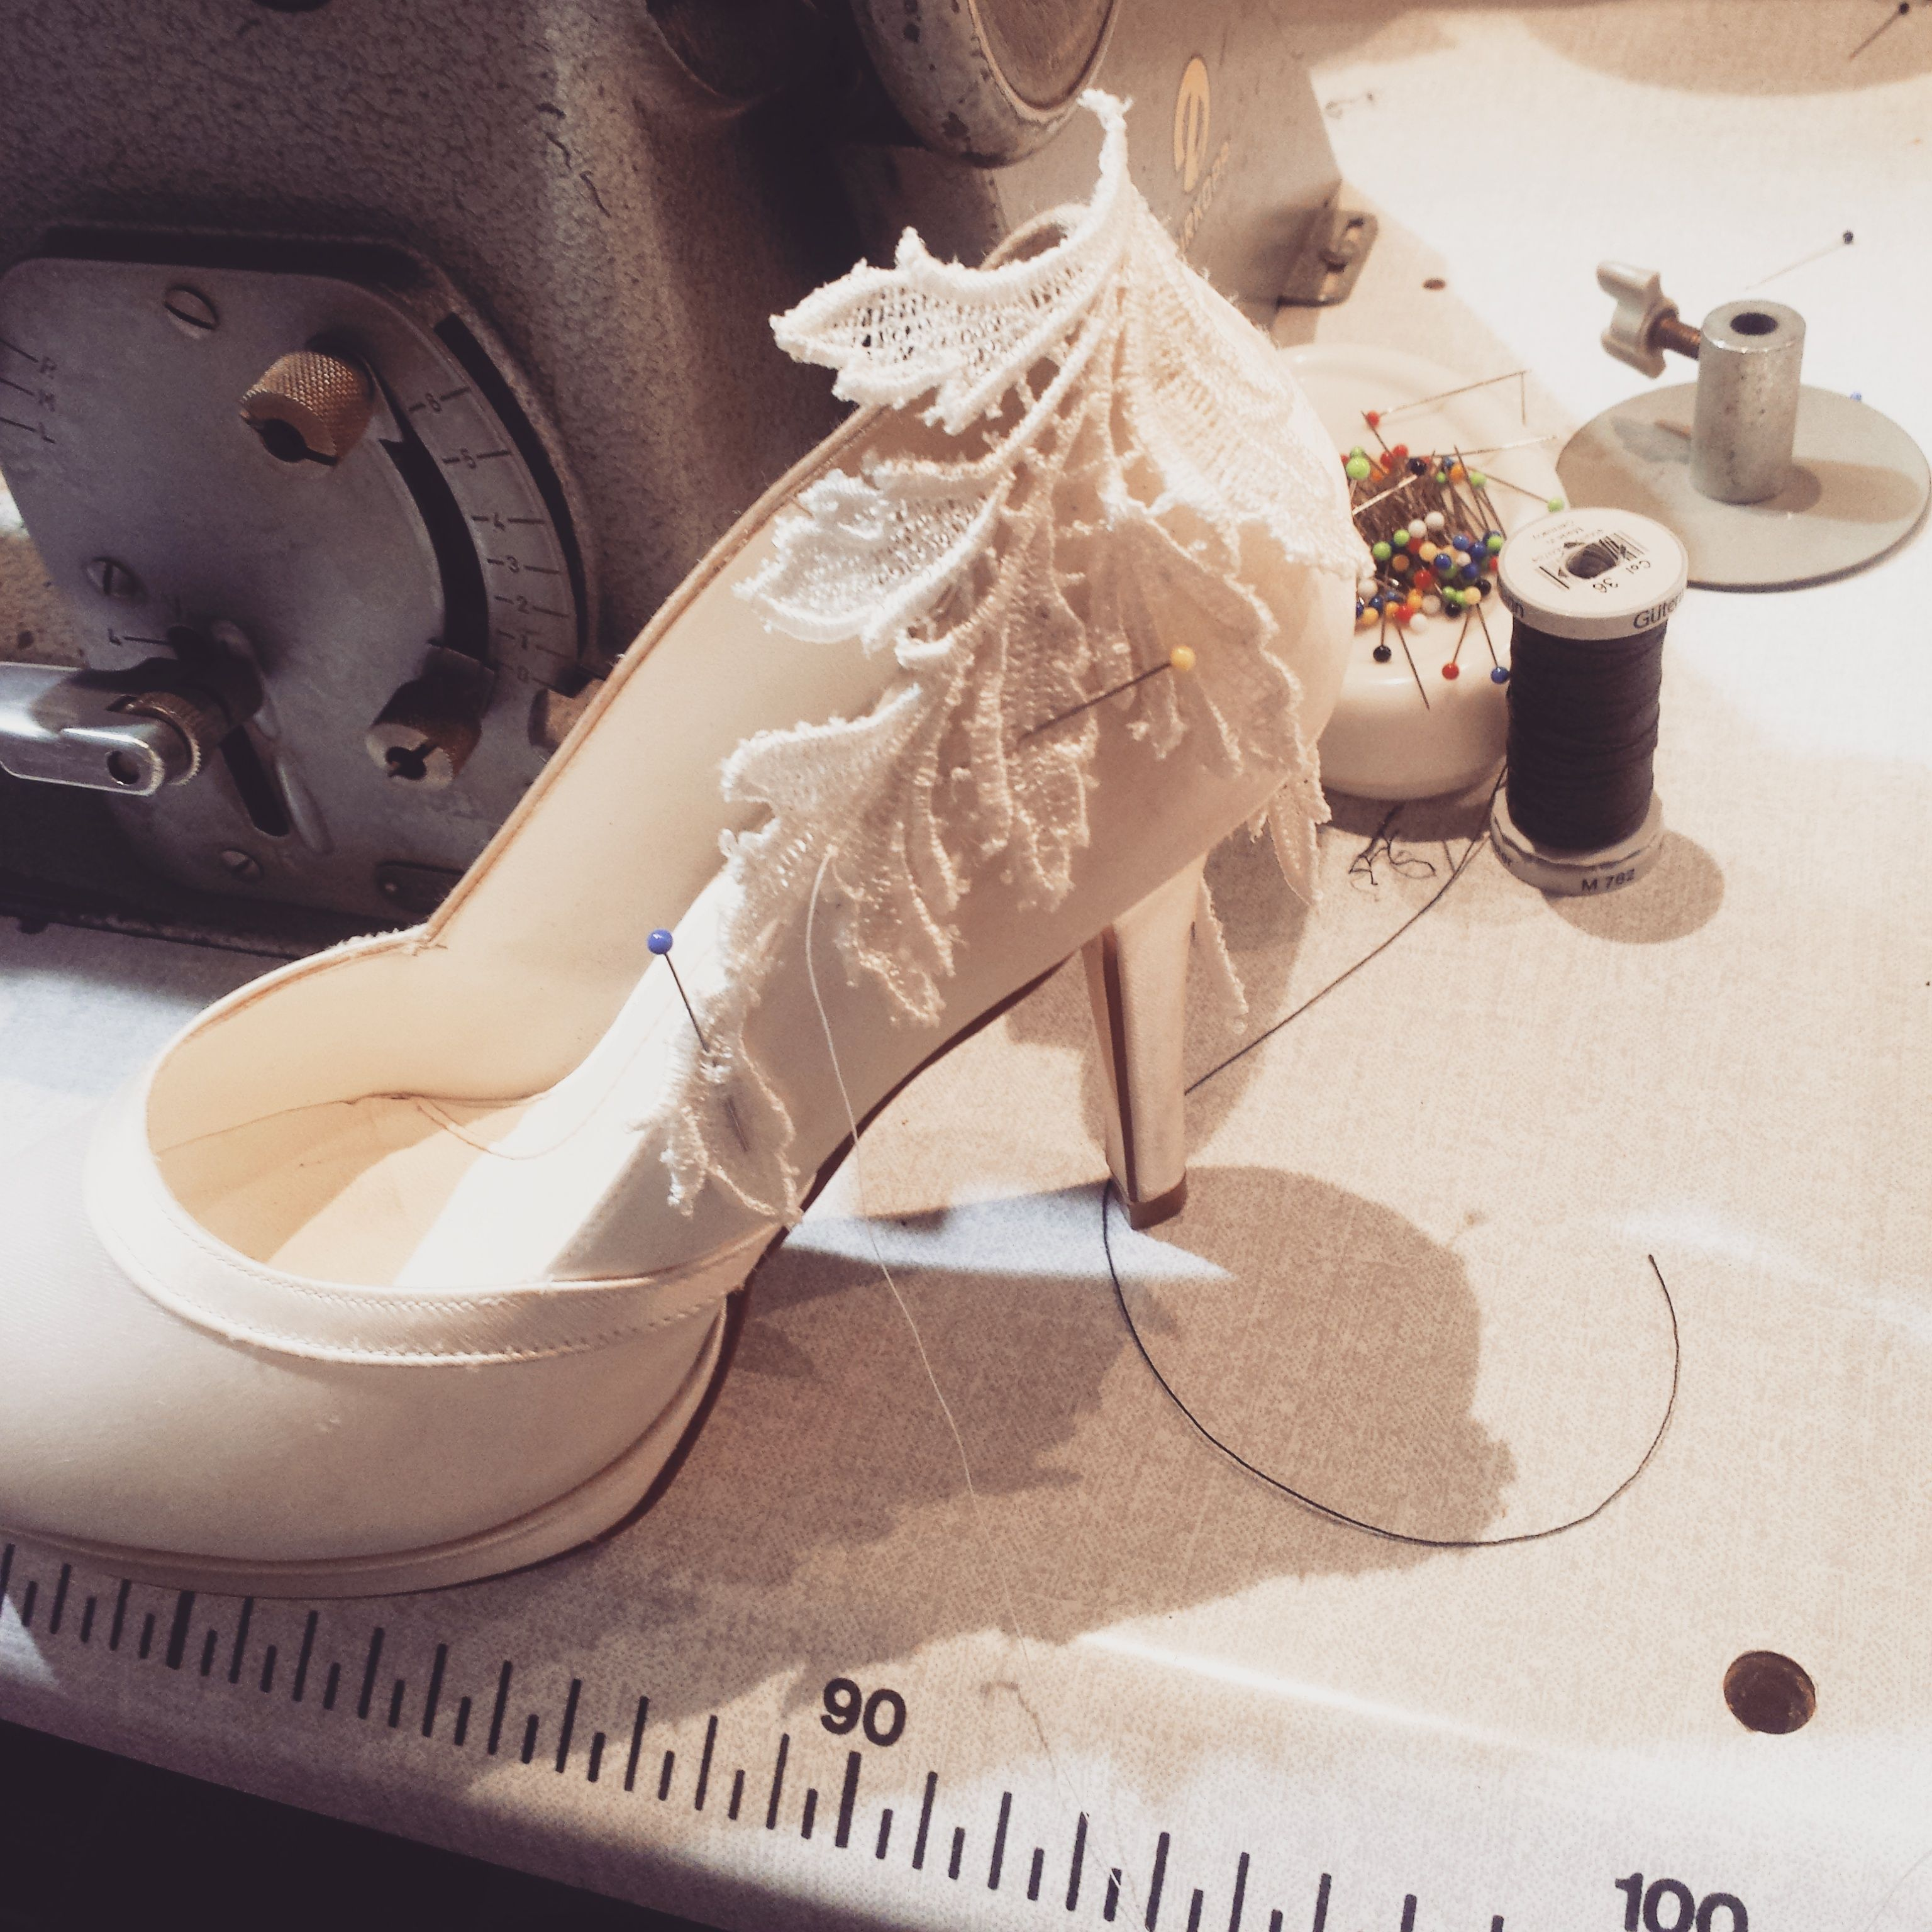 Work in progress #Hillenius Couture Shoes Lace Kant Handwerk ambacht Weddings Bruiden